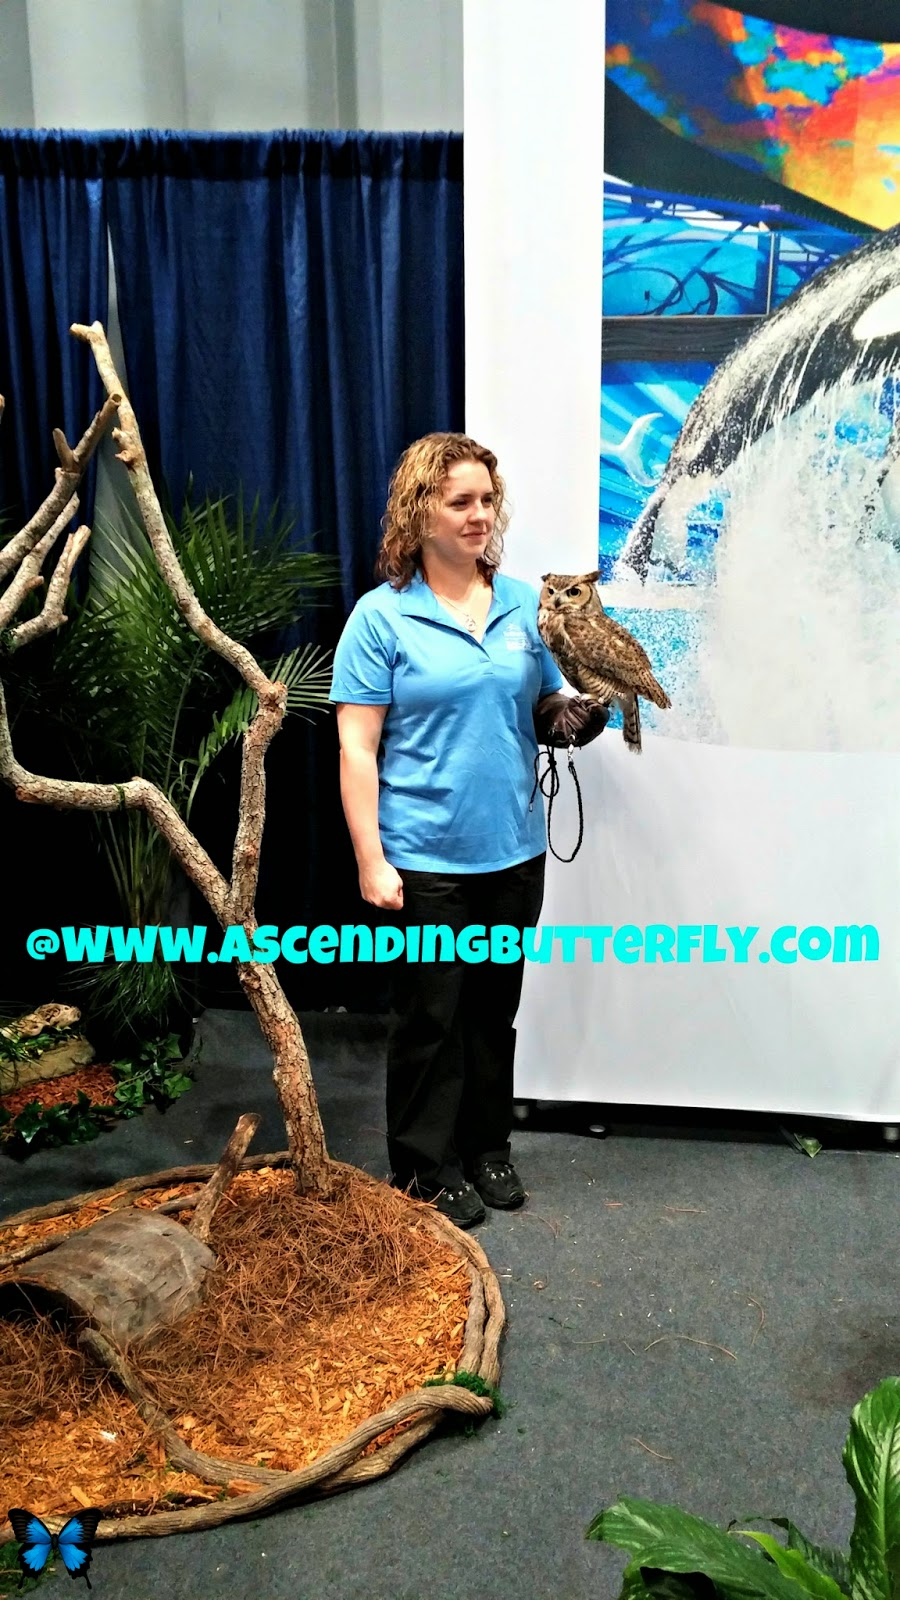 Sea World Display Area at 2014 New York Times Travel Show, Owl